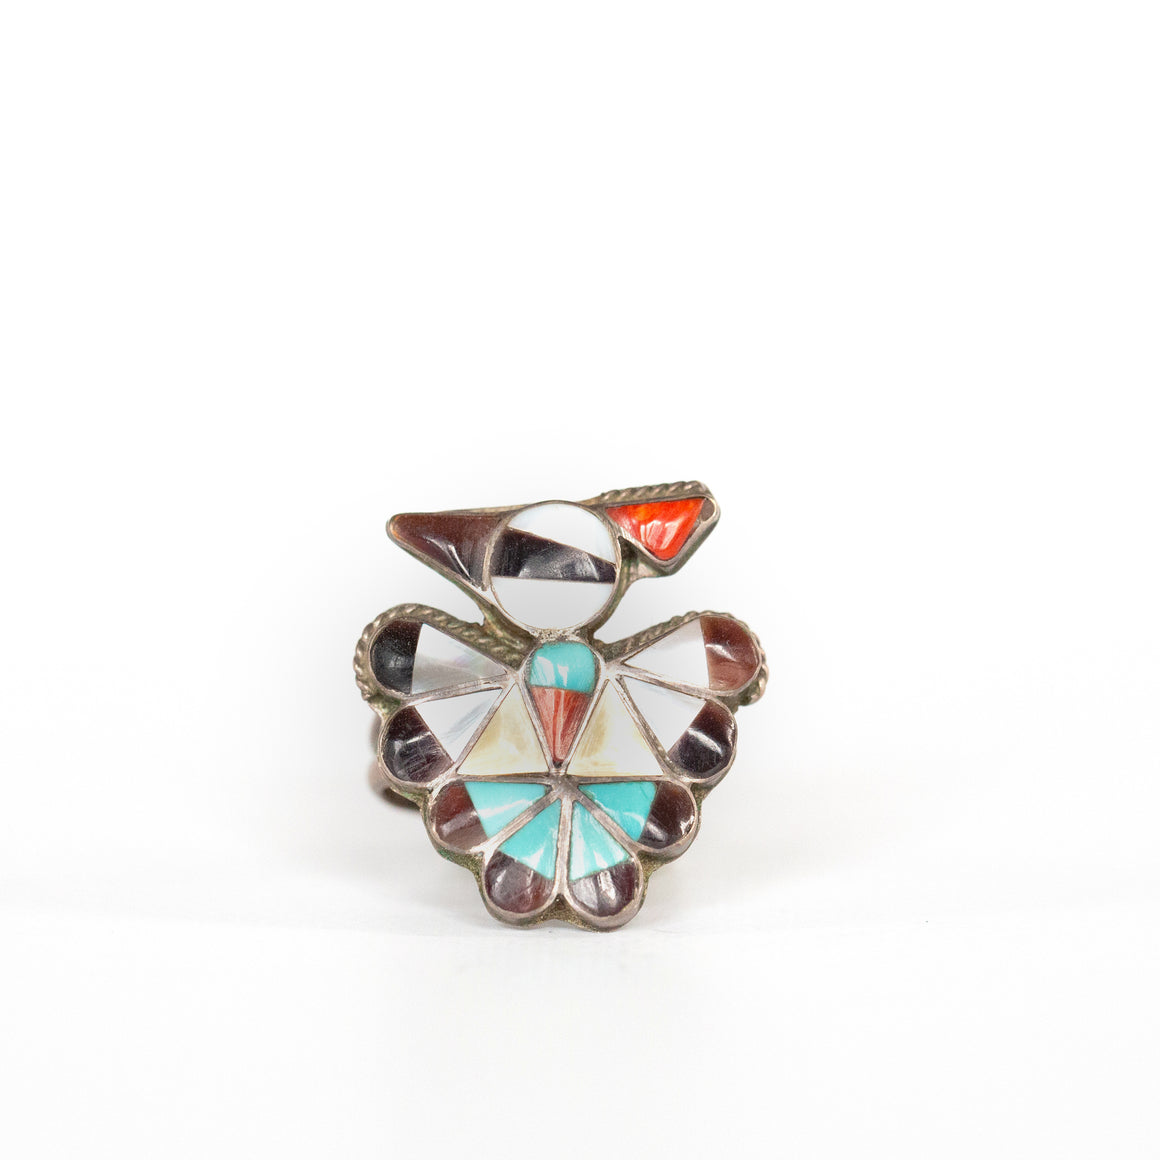 VINTAGE JEWELRY | ZUNI STERLING THUNDERBIRD RING (SIZE 6.5)